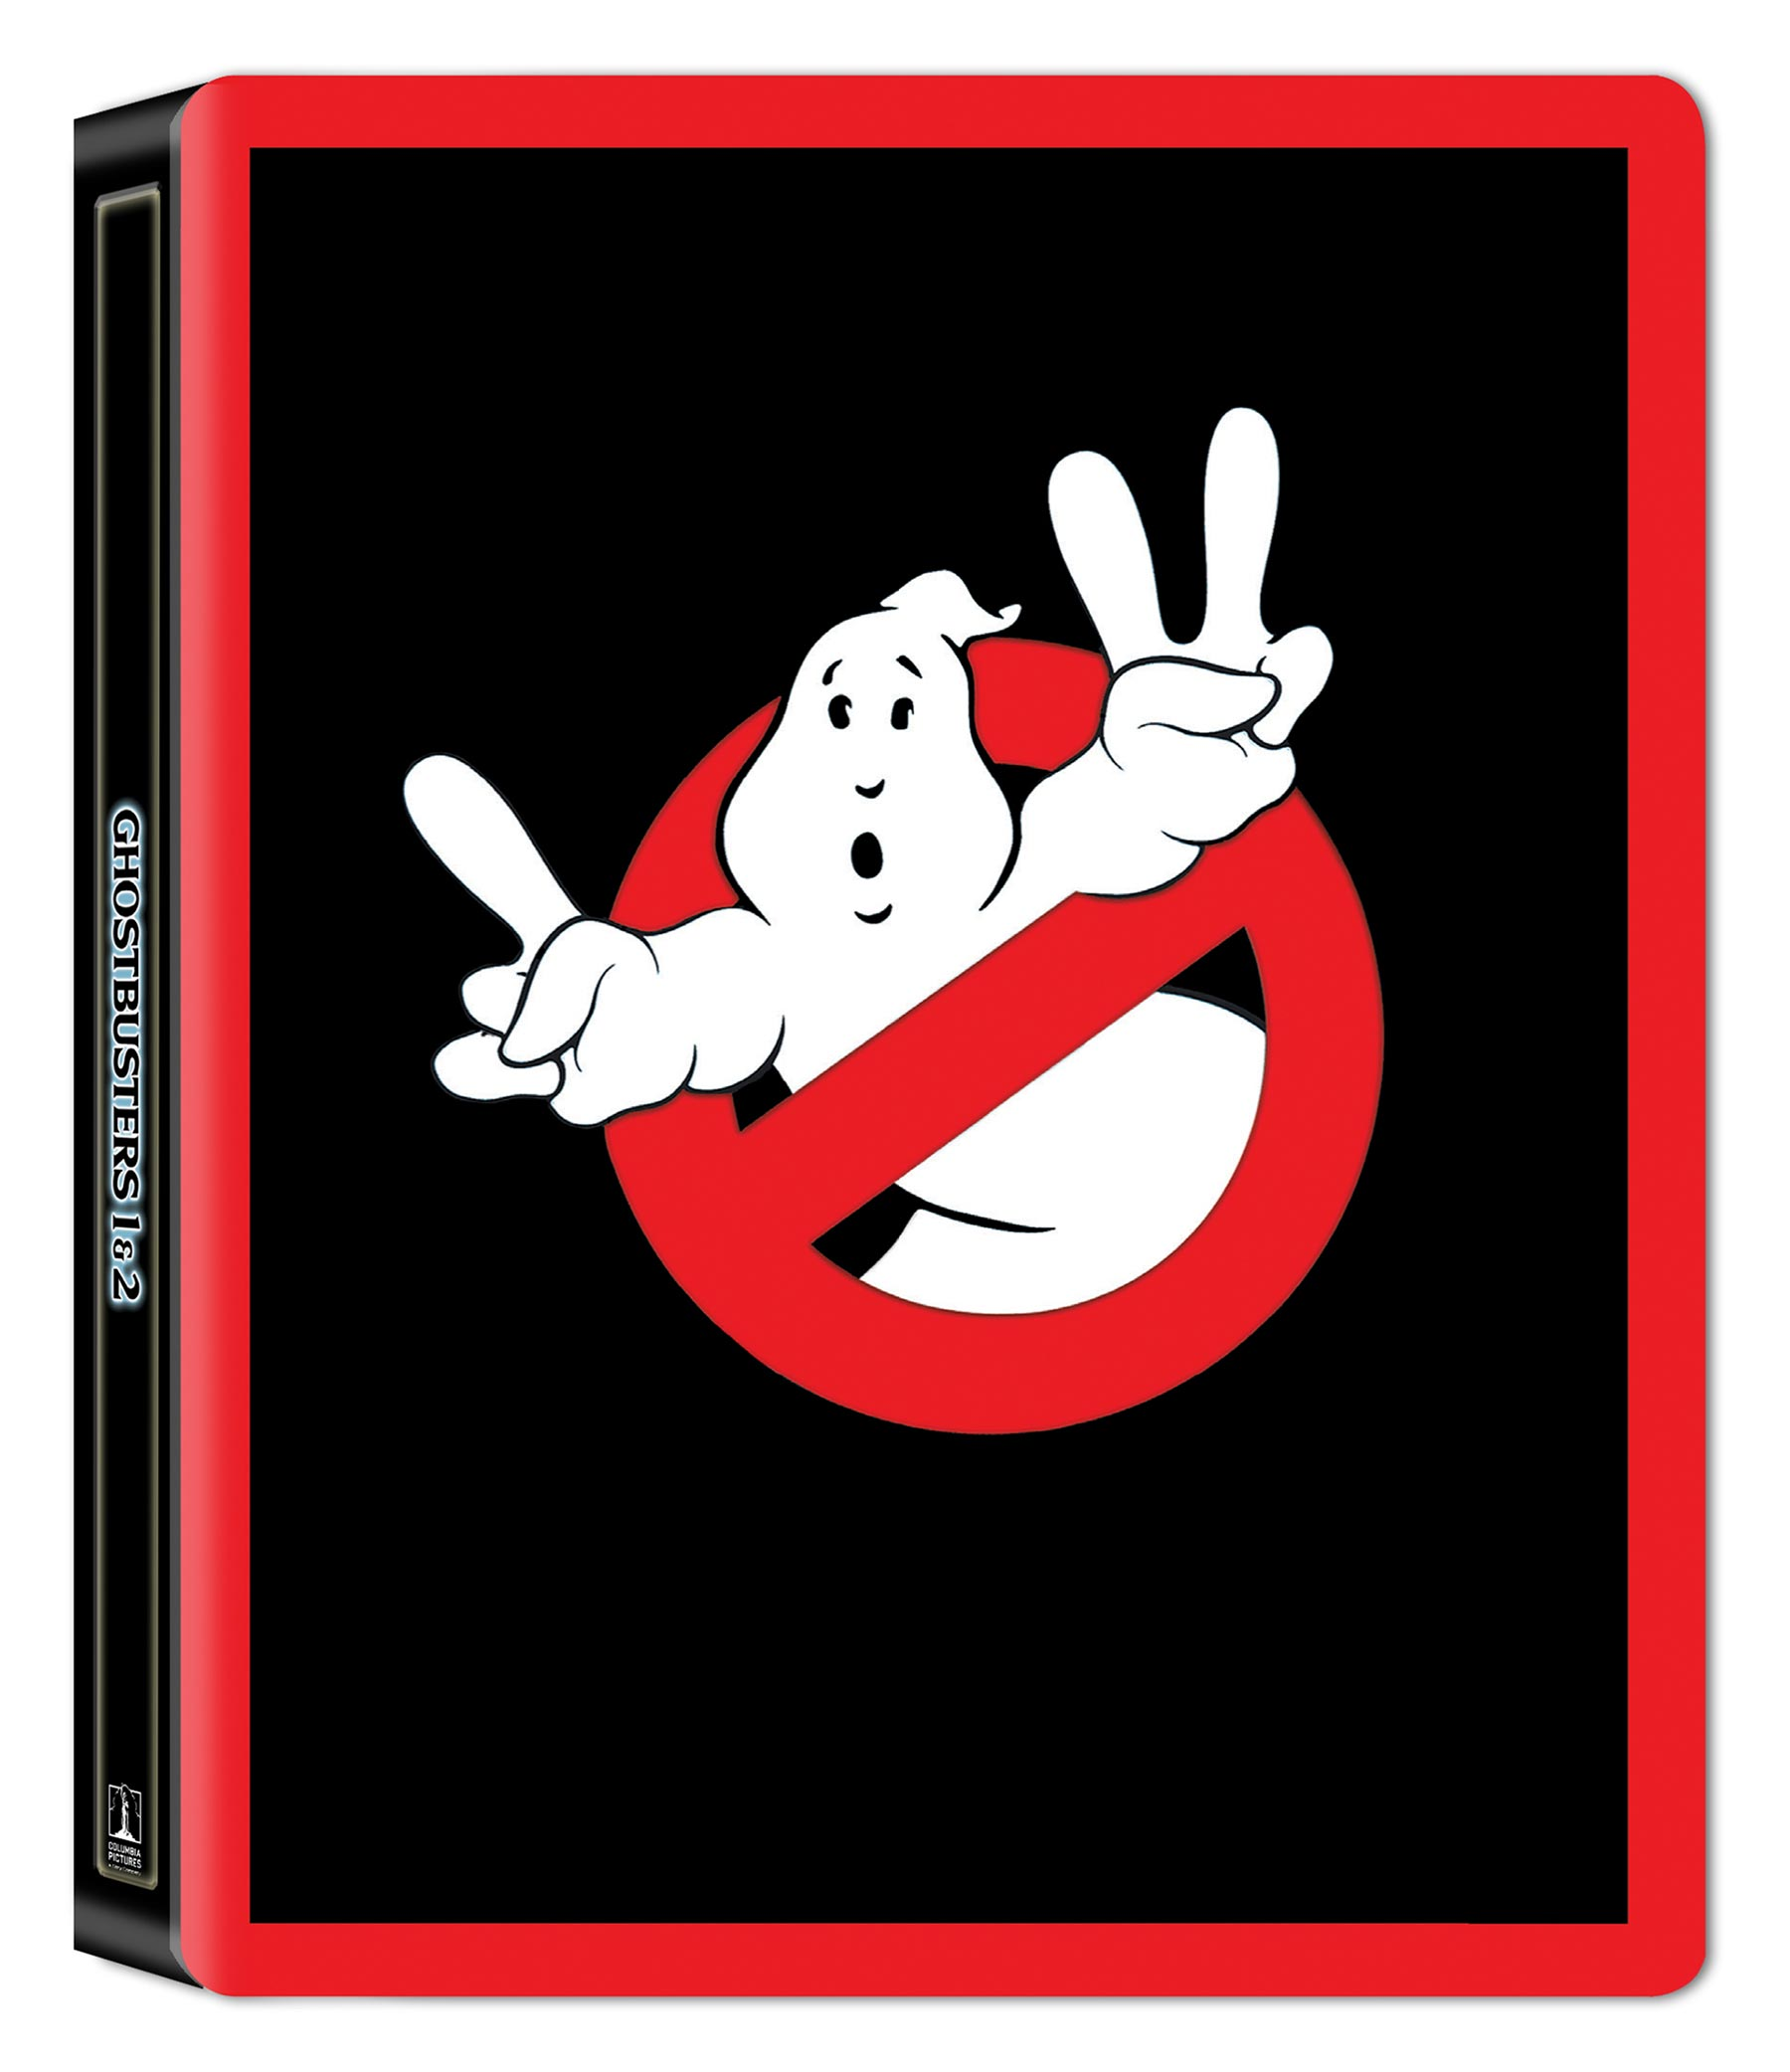 ghostbusters_set_steelbook.jpg